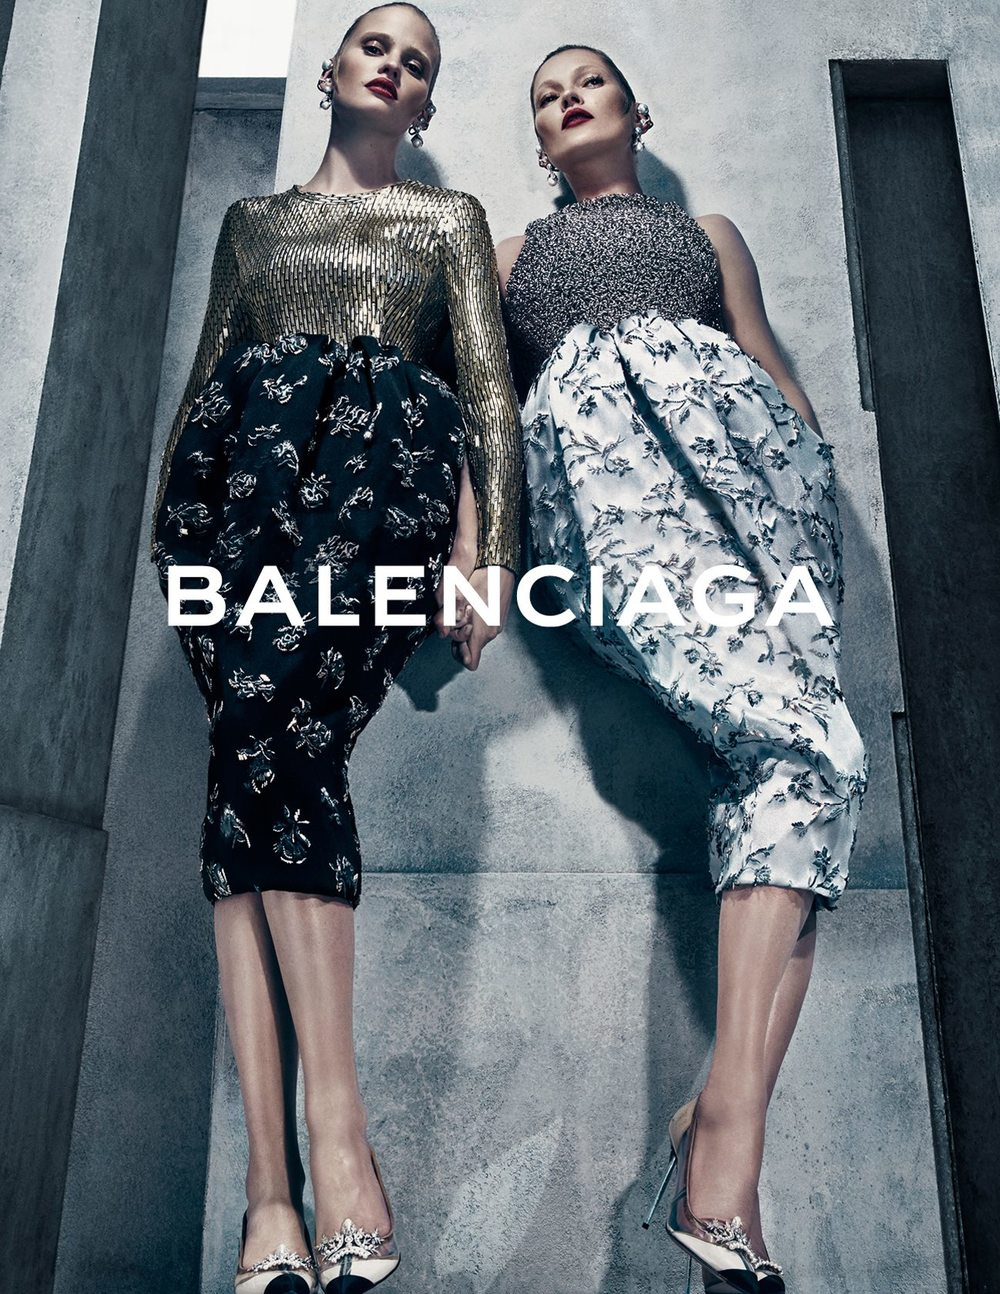 kate-moss-lara-stone-by-steven-klein-for-balenciaga-fall-winter-2015-2016-1.jpg